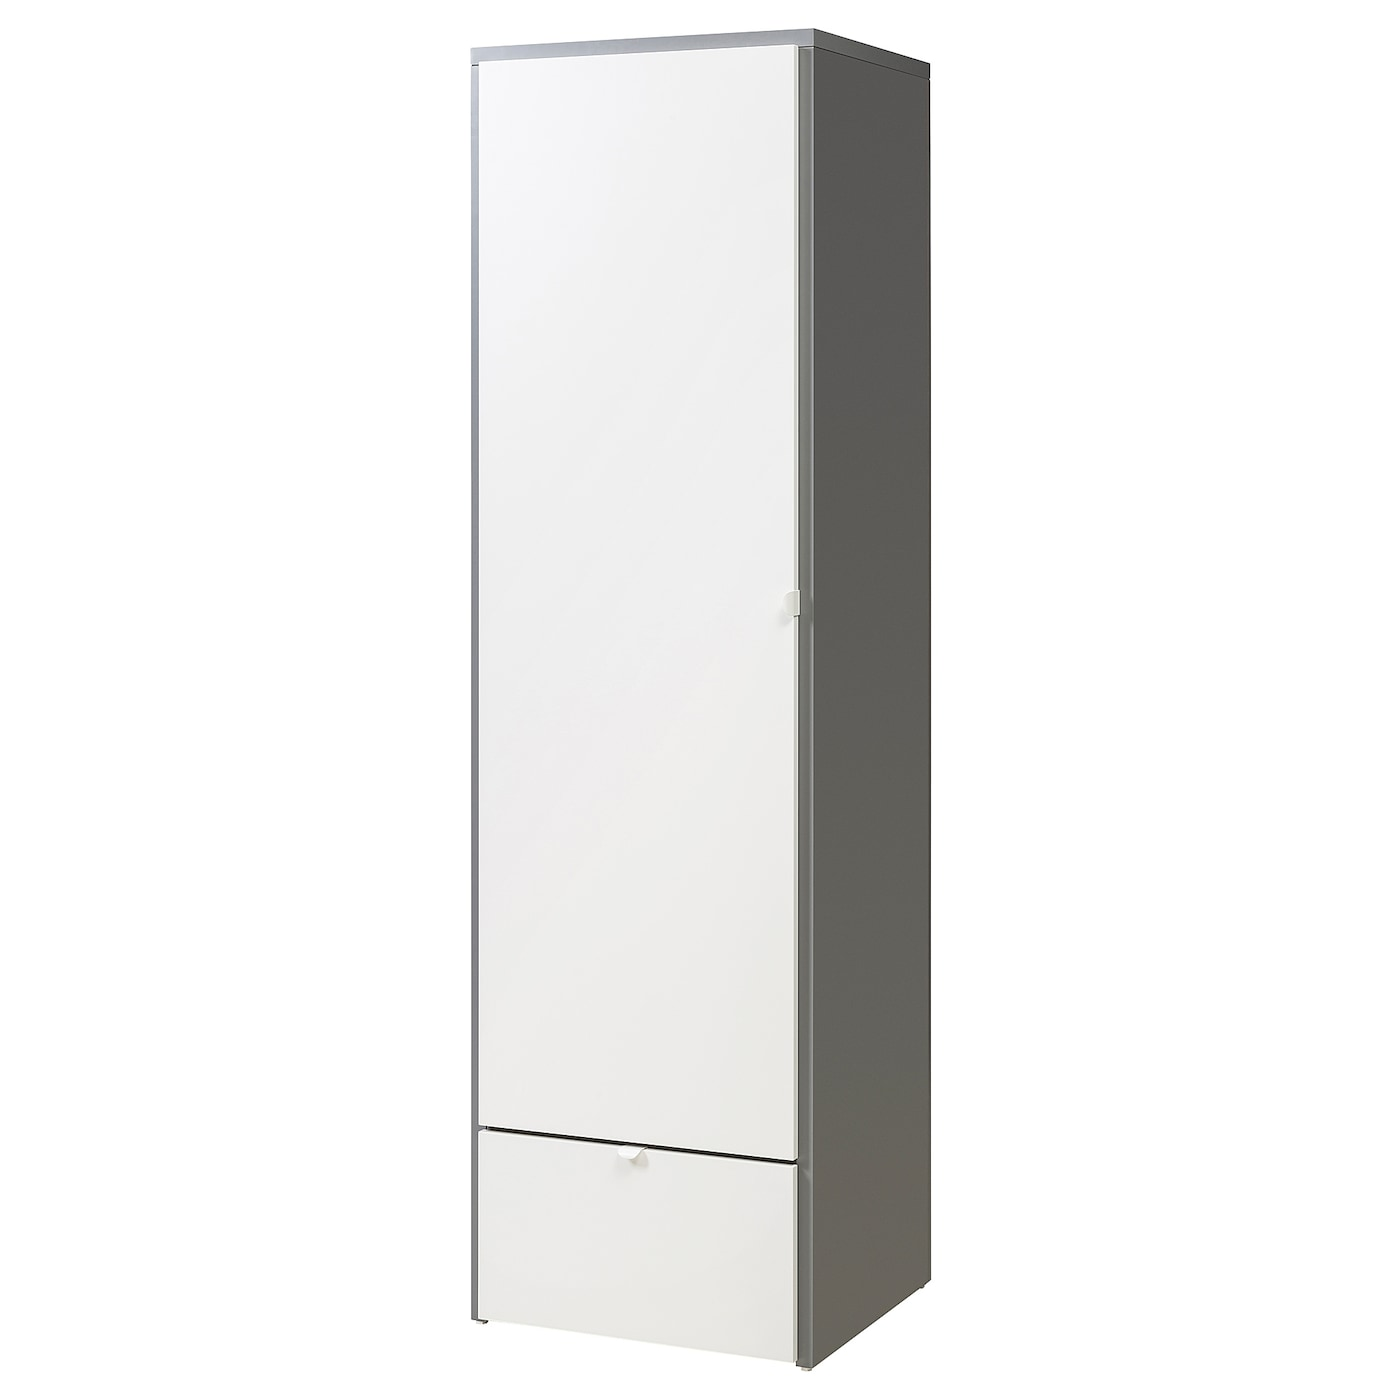 VISTHUS Wardrobe Grey white 63x59x216 cm IKEA